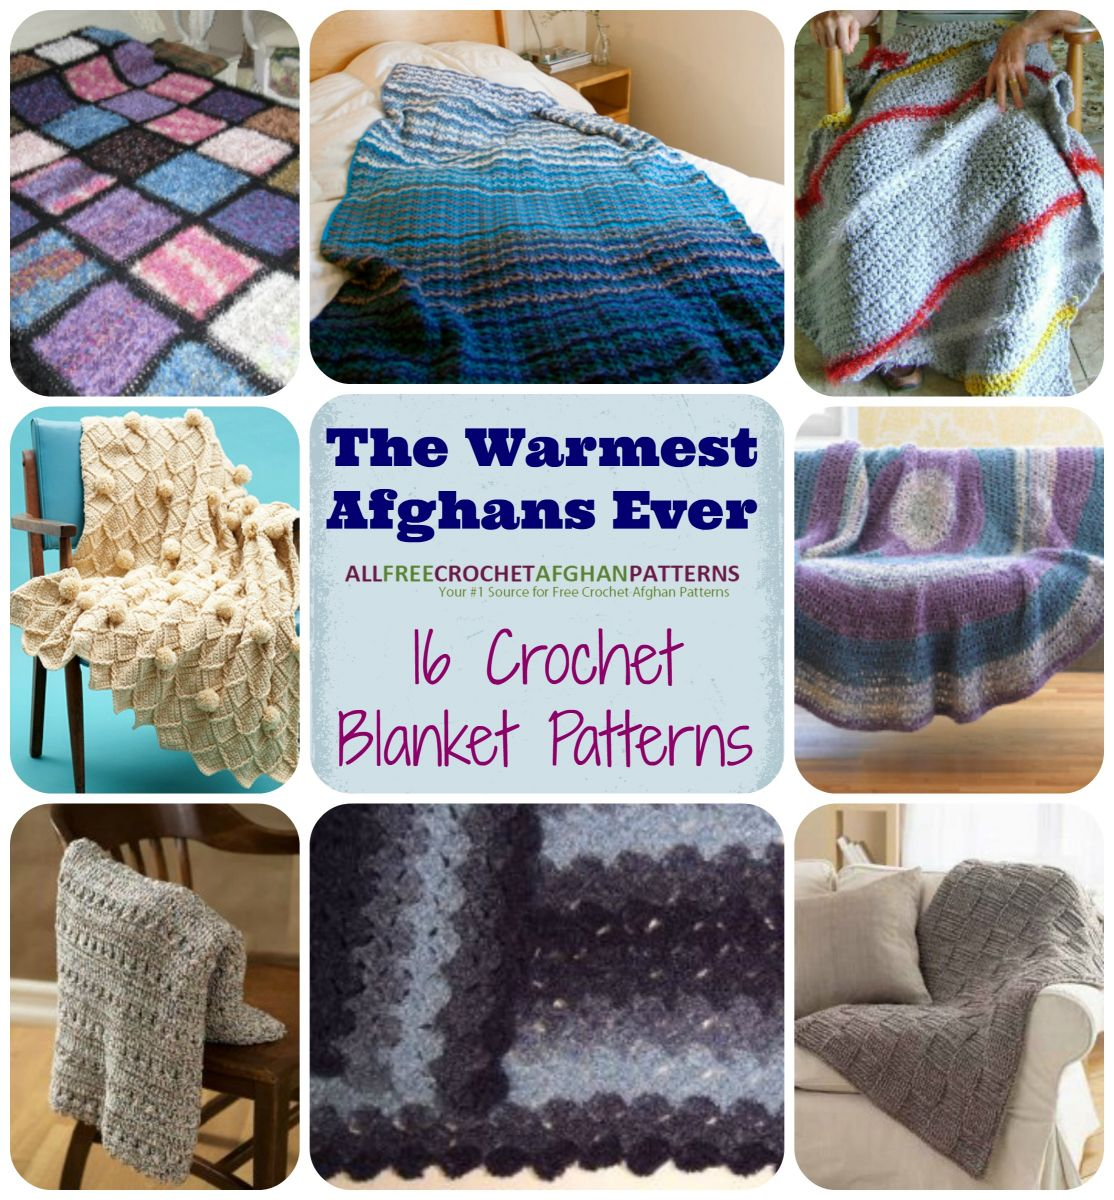 The warmest afghans ever 16 crochet blanket patterns extra warm crochet afghan patterns super cozy crochet throws and lapghans bankloansurffo Gallery